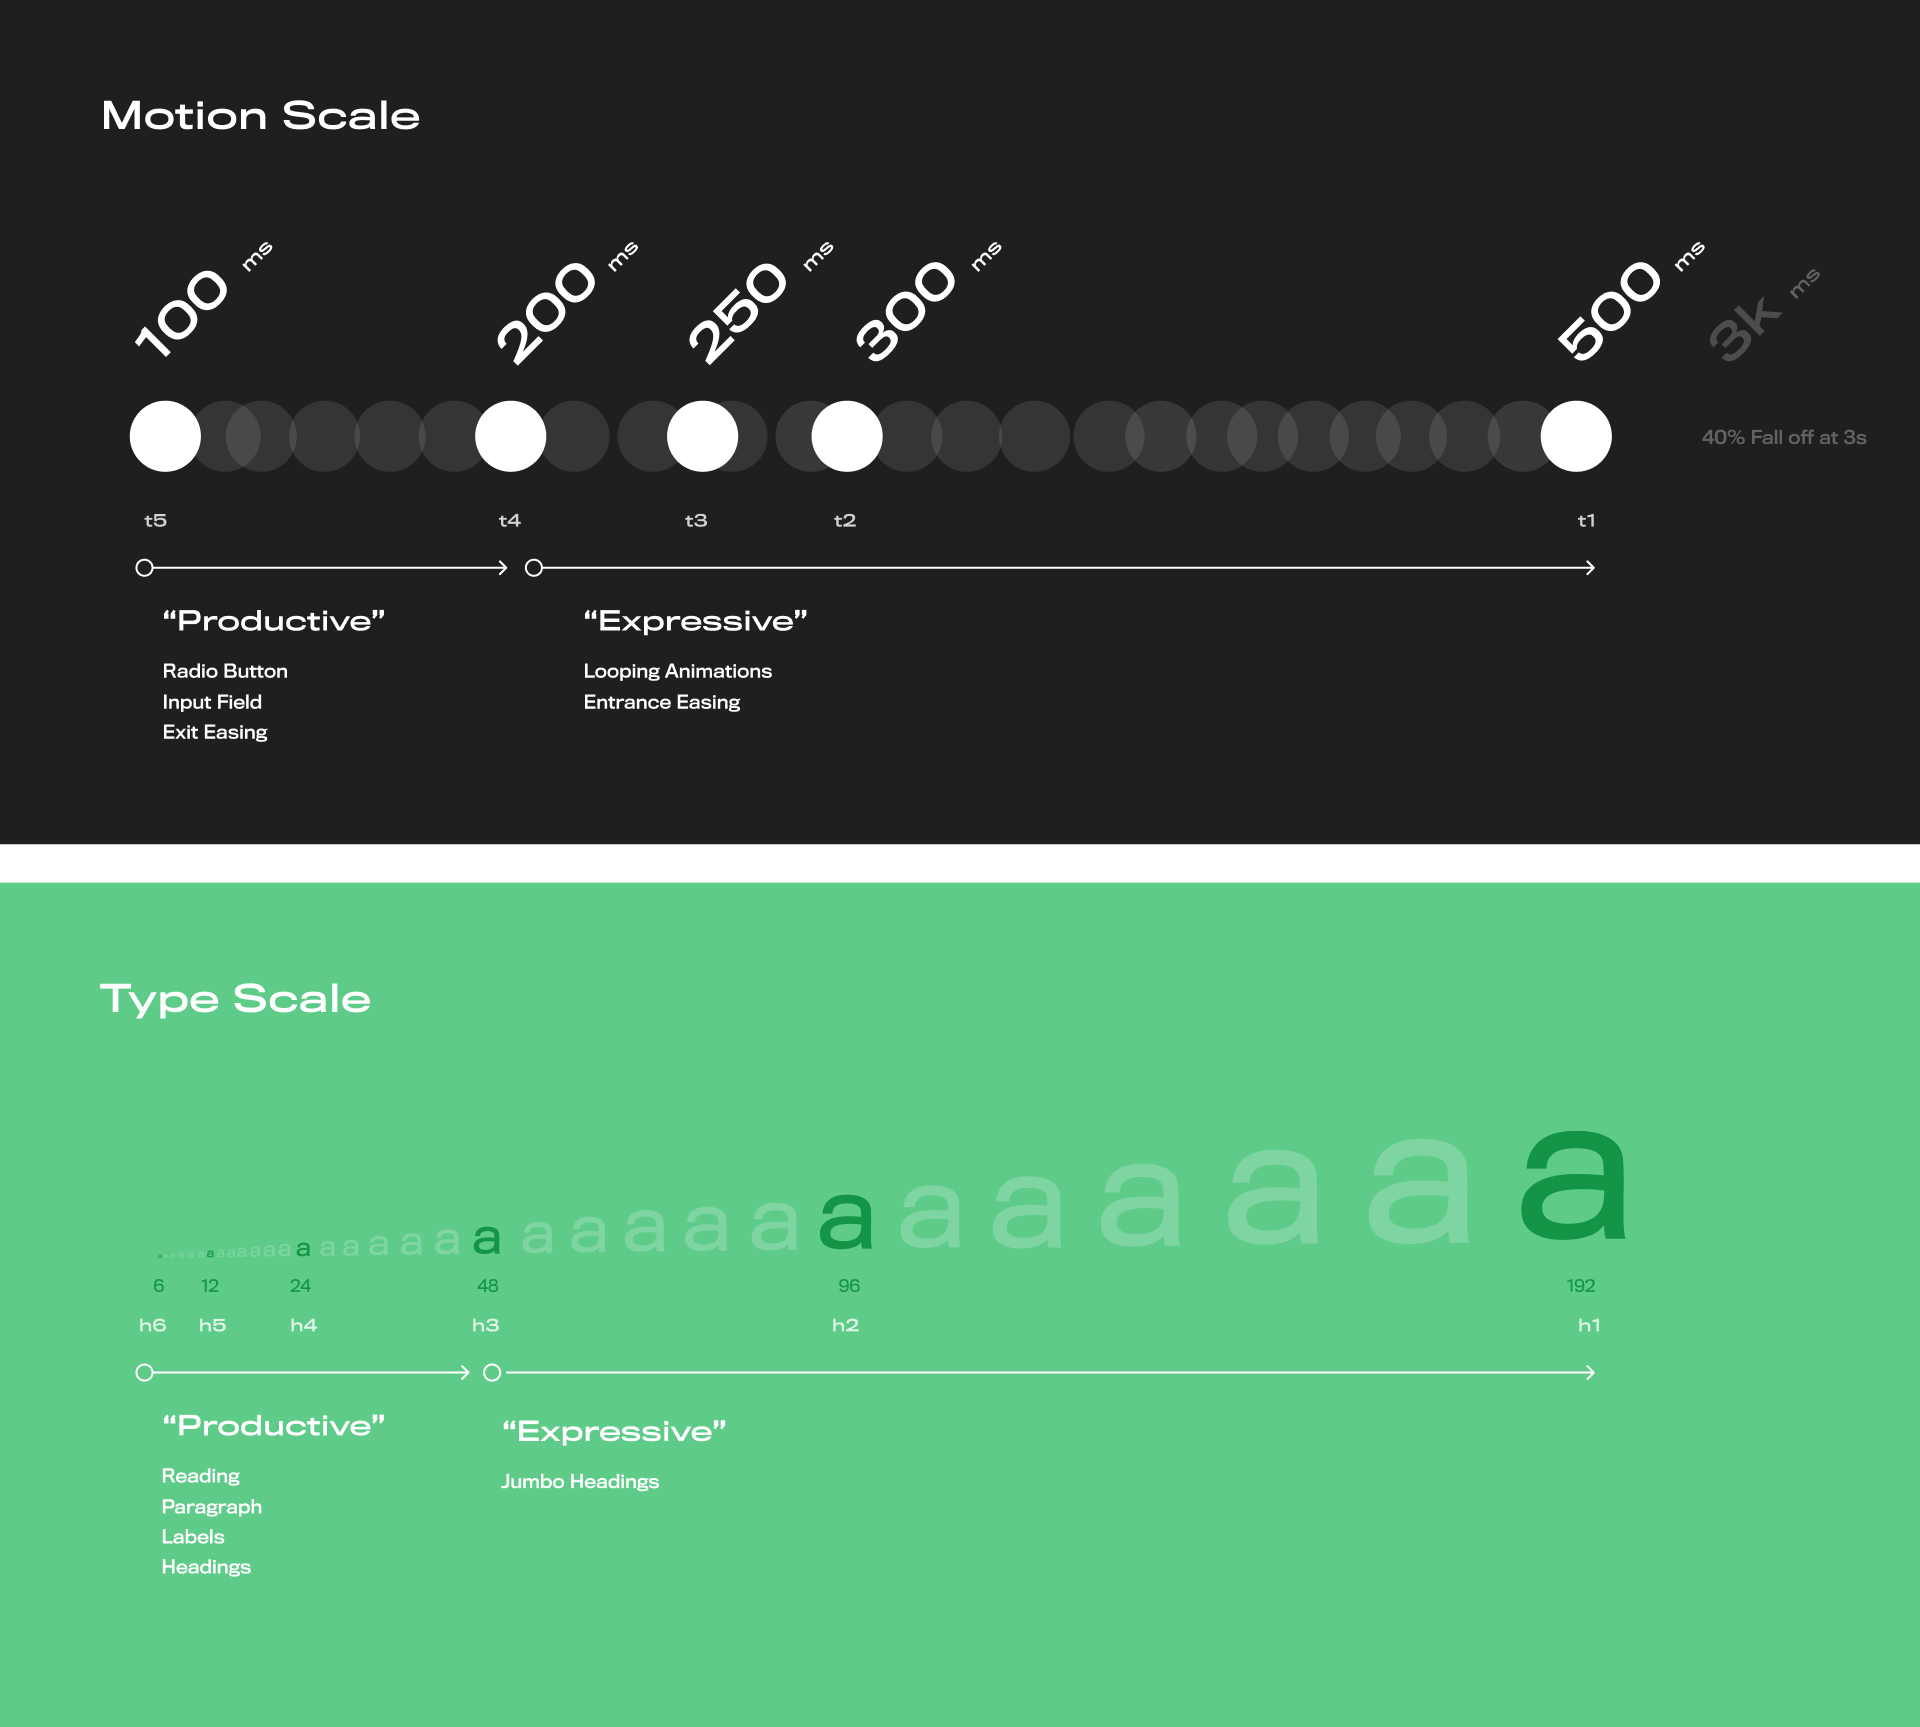 Motion Scales